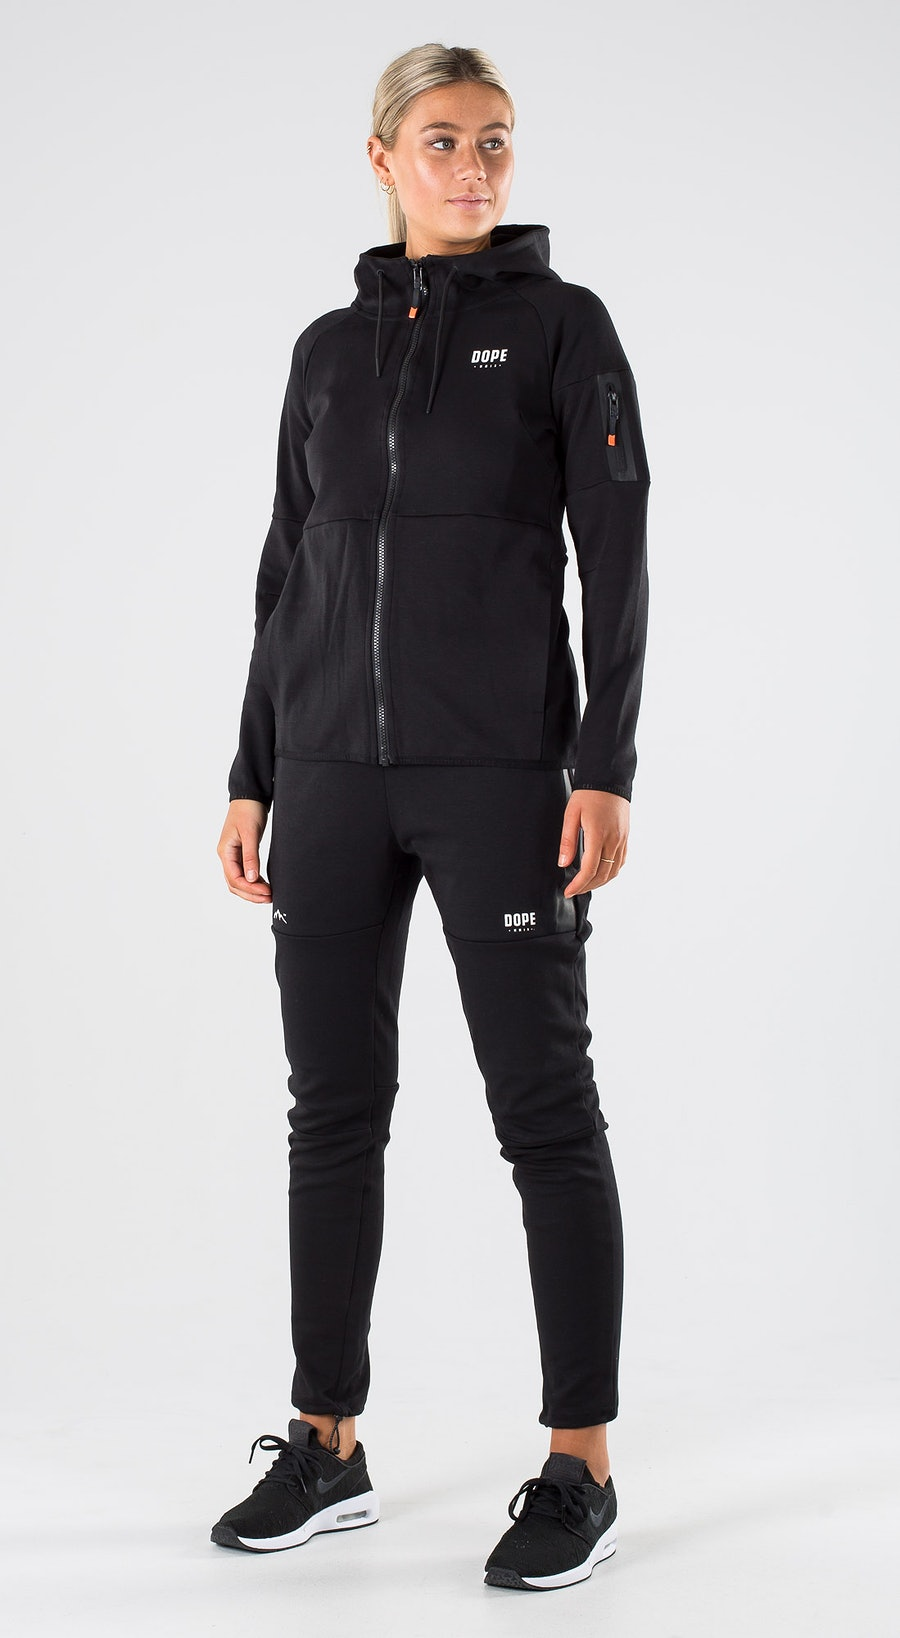 Dope Ronin Zip W Black Outfit Multi